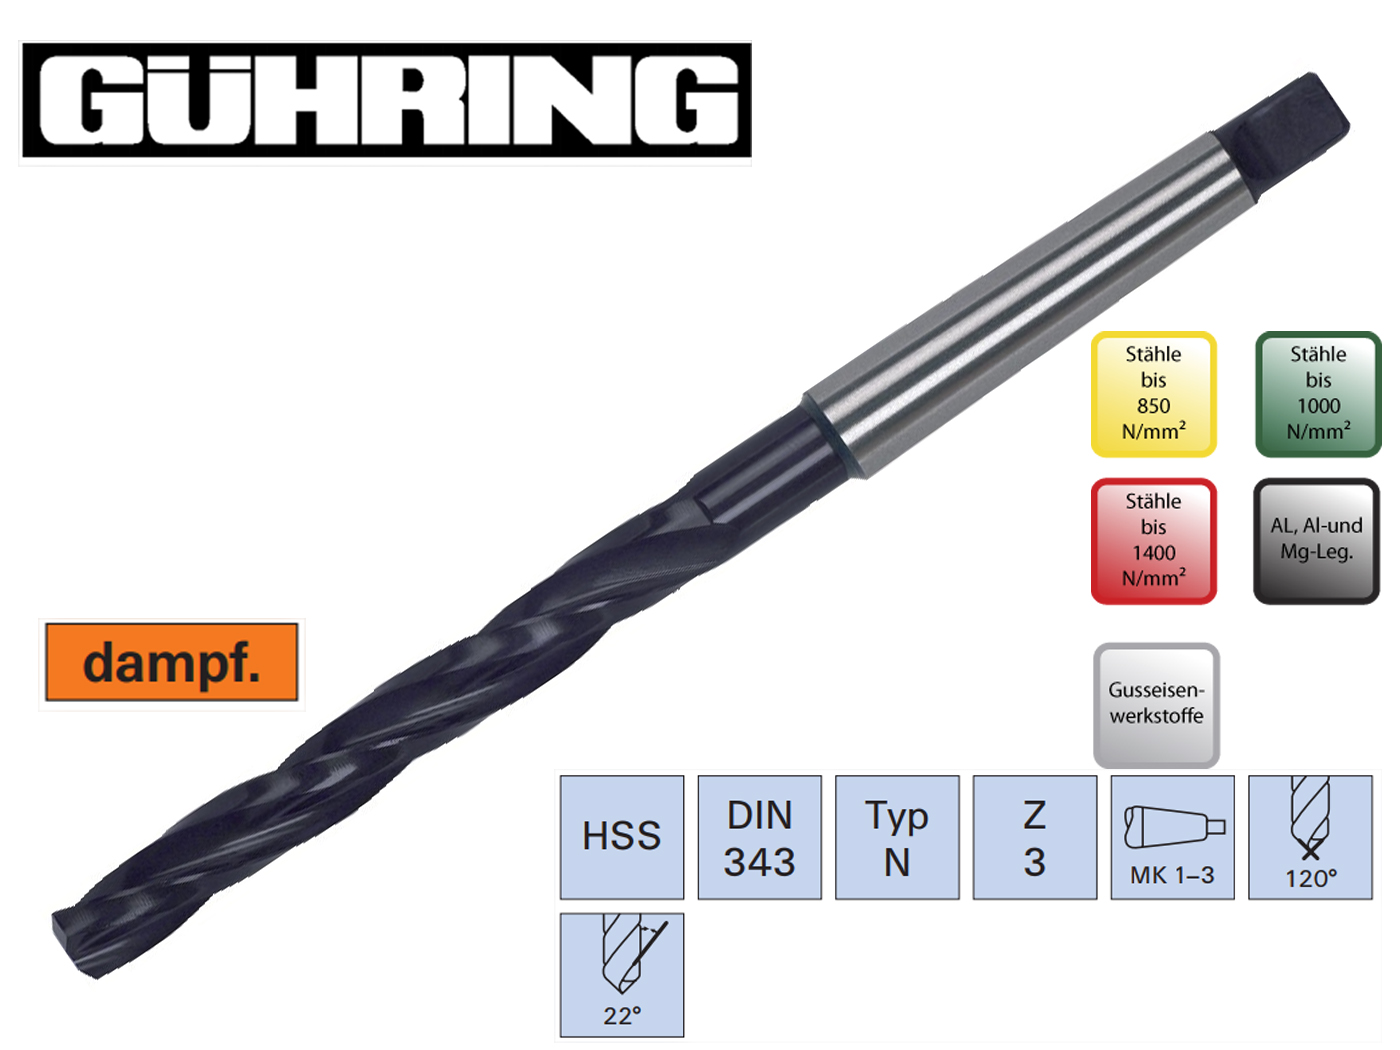 Boorfrees DIN 343 HSS Guhring | DKMTools - DKM Tools